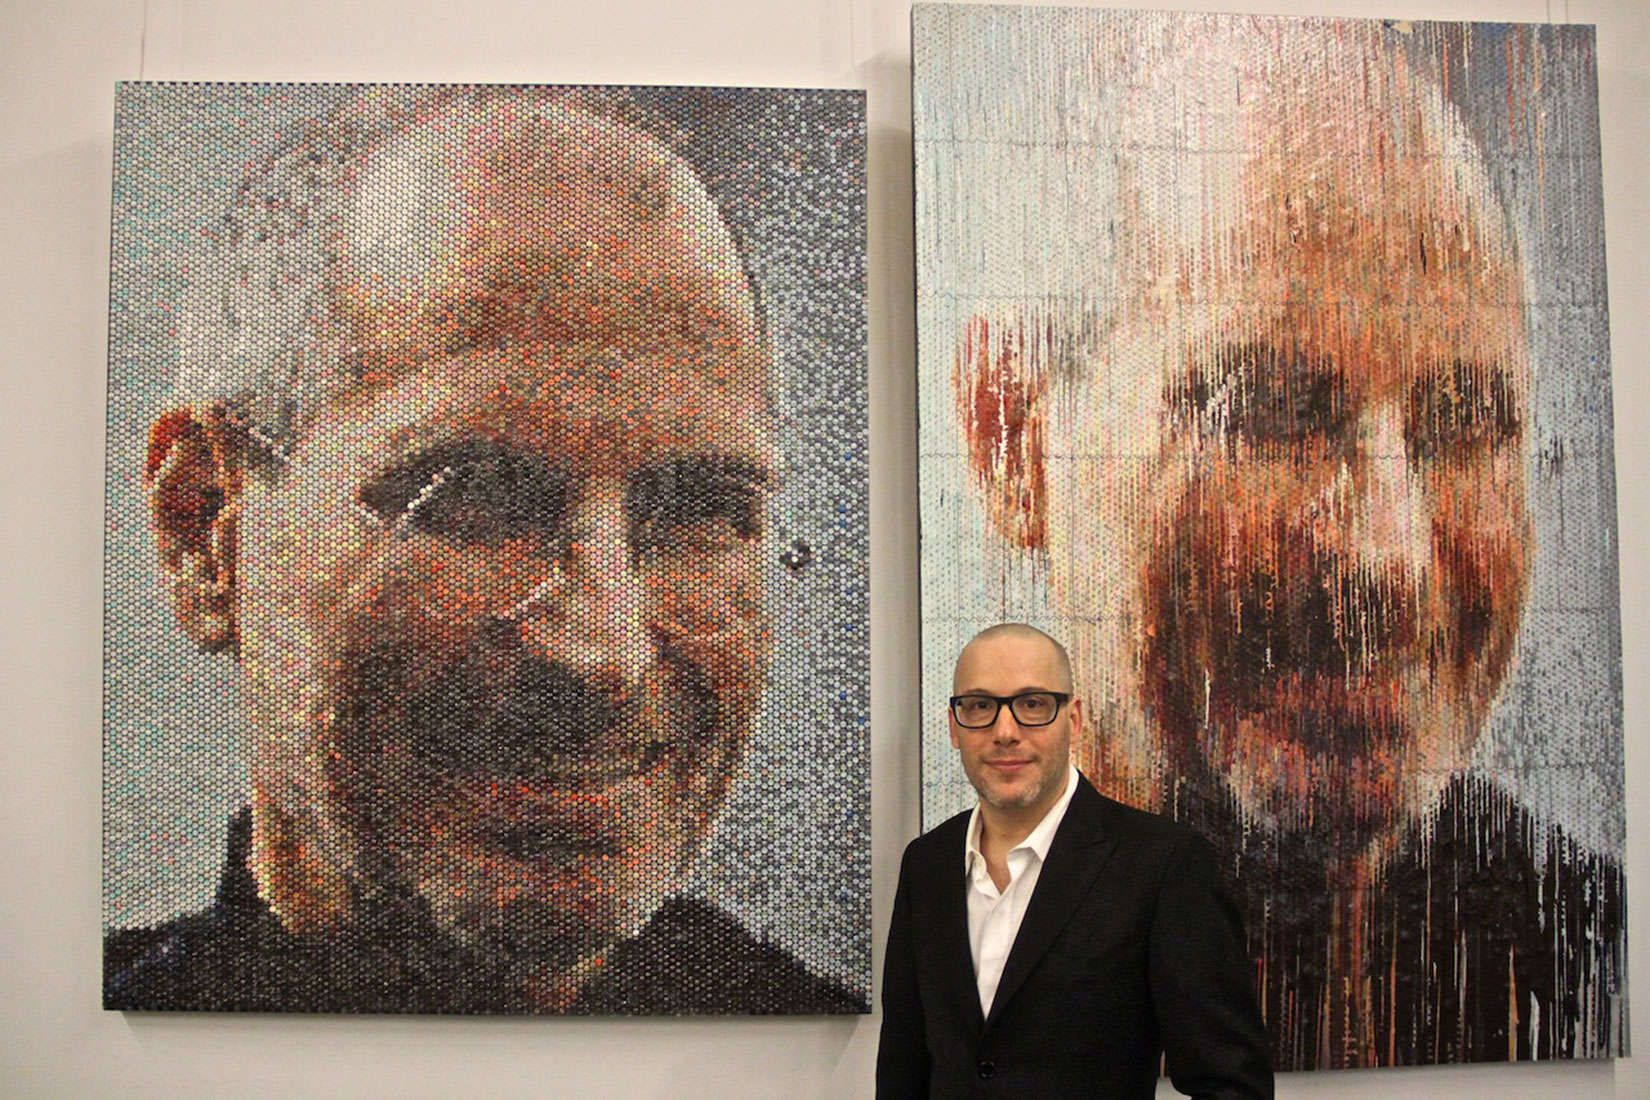 Bradley Hart injects paint into bubble wrap for photo-realistic portraits, like this one of Steve Jobs.